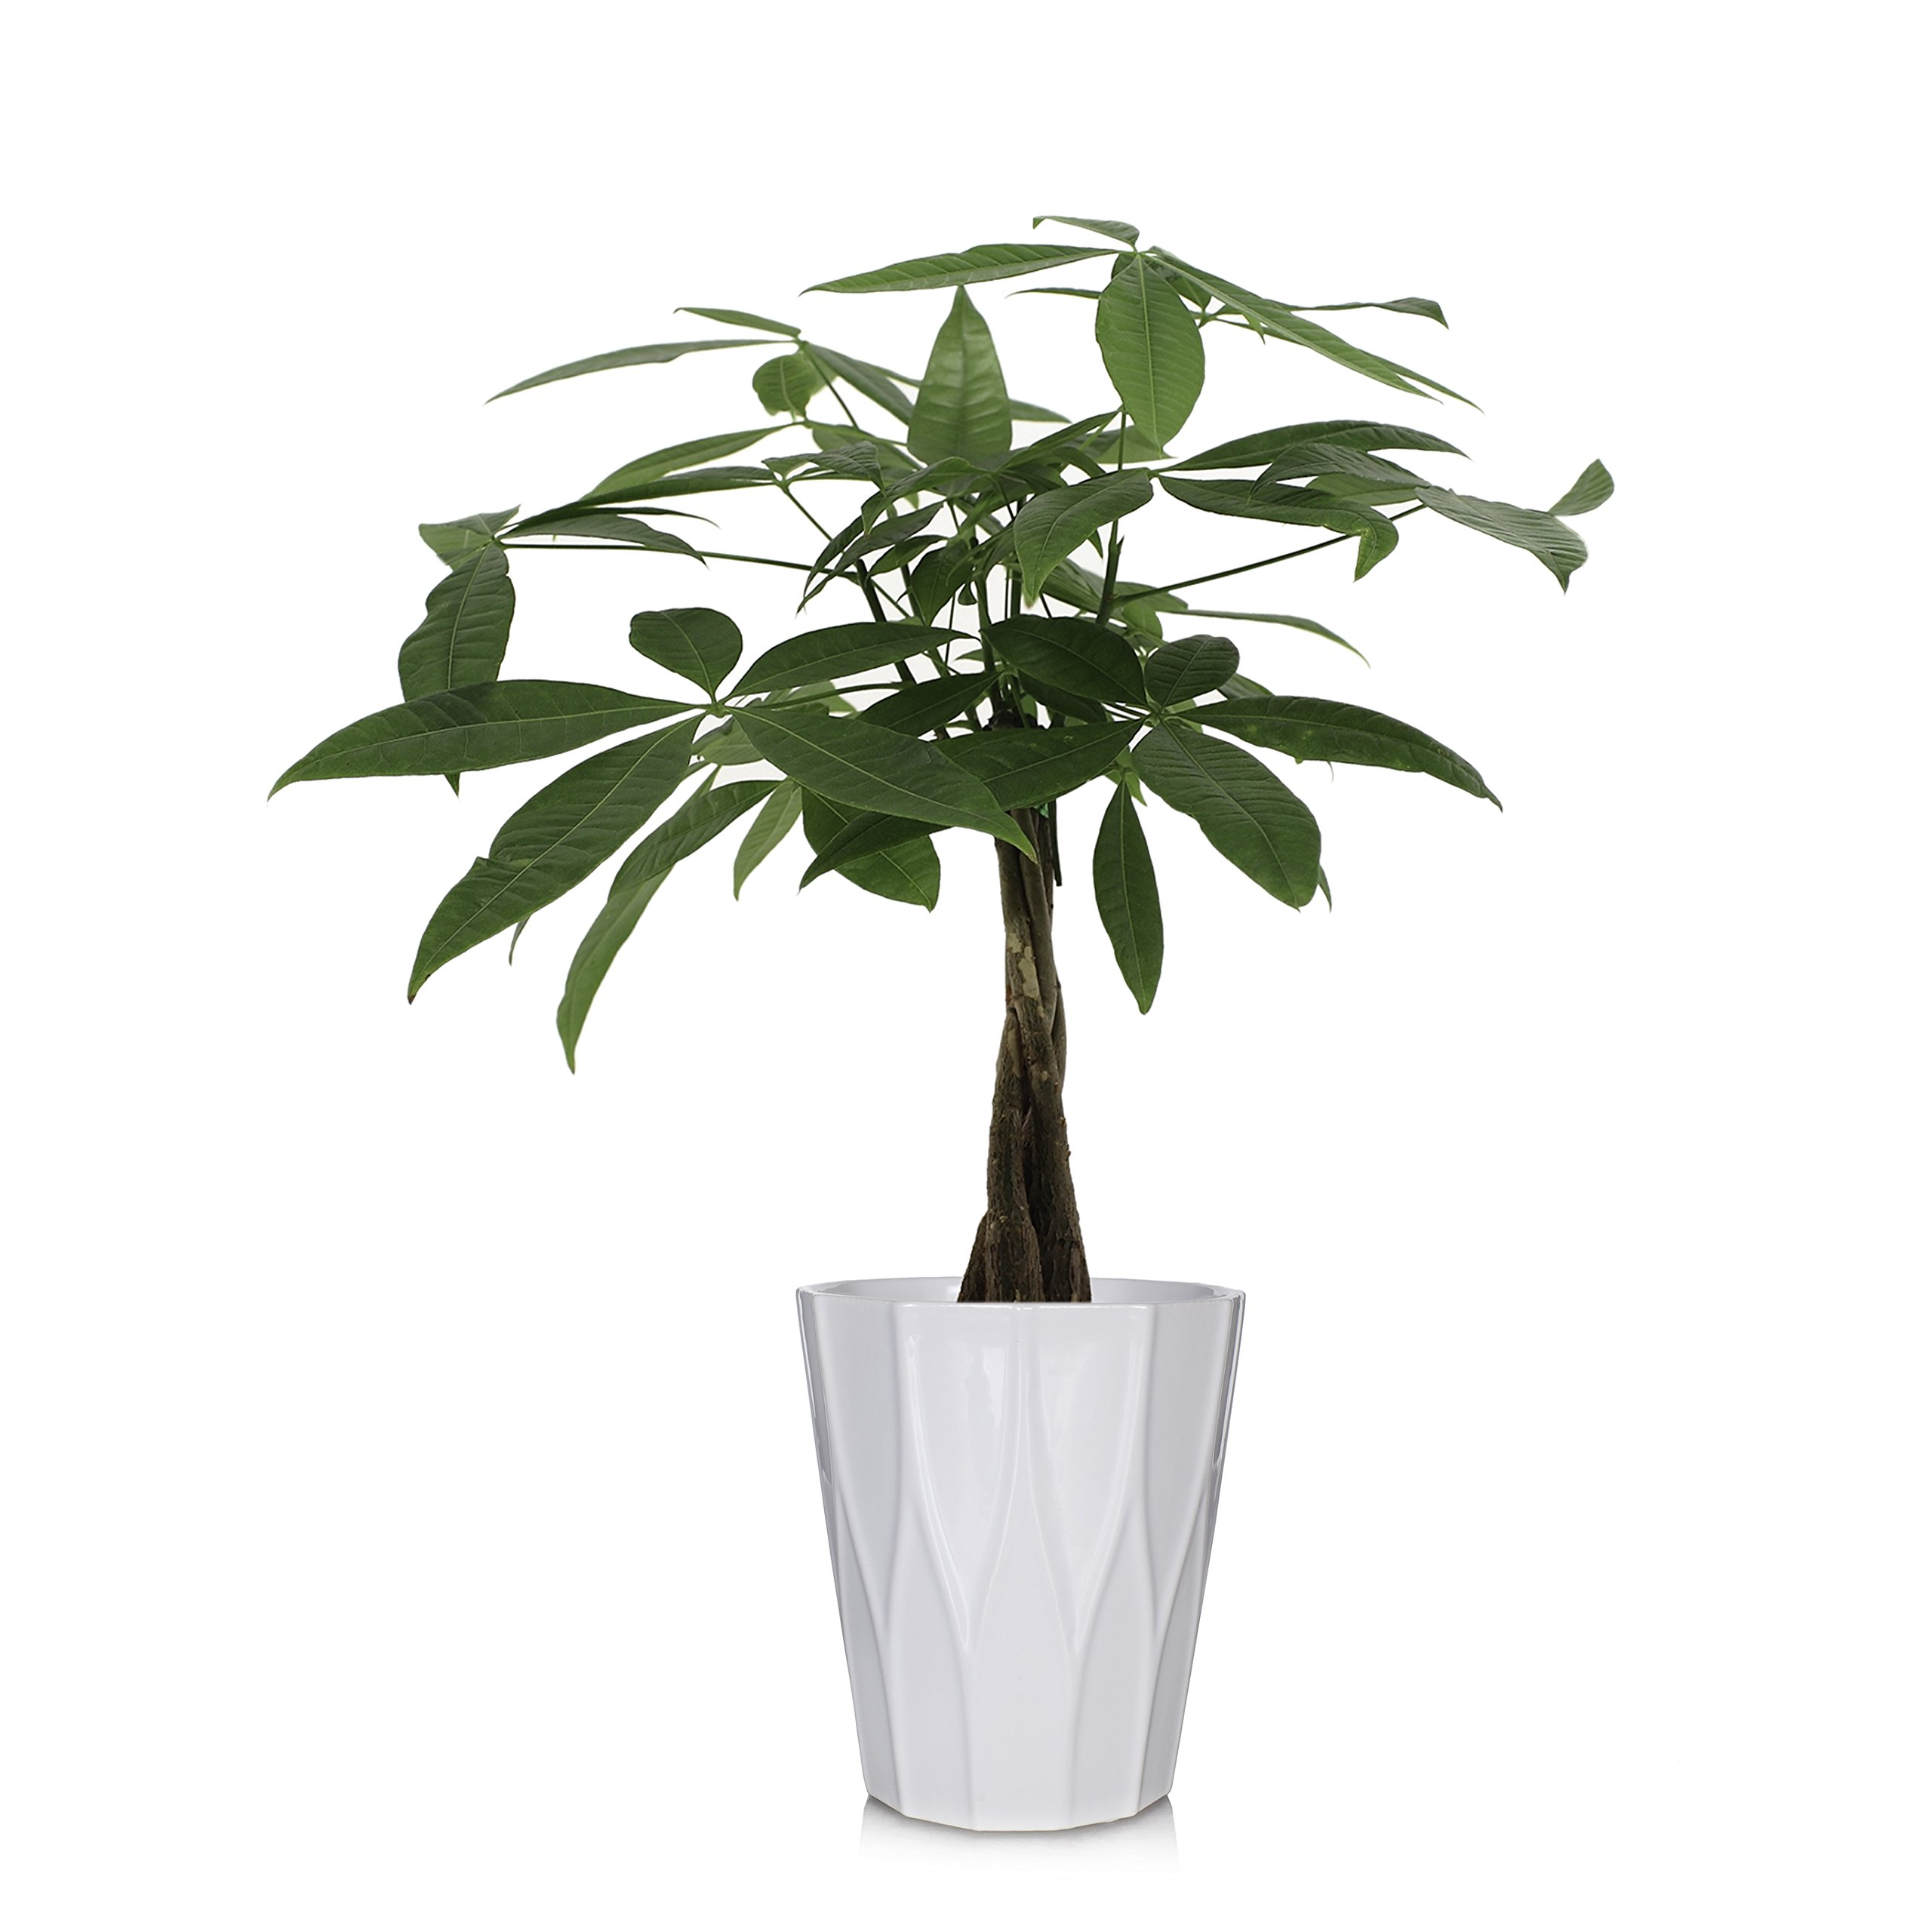 Just Add Ice 262768 Money Tree, 5'', Green